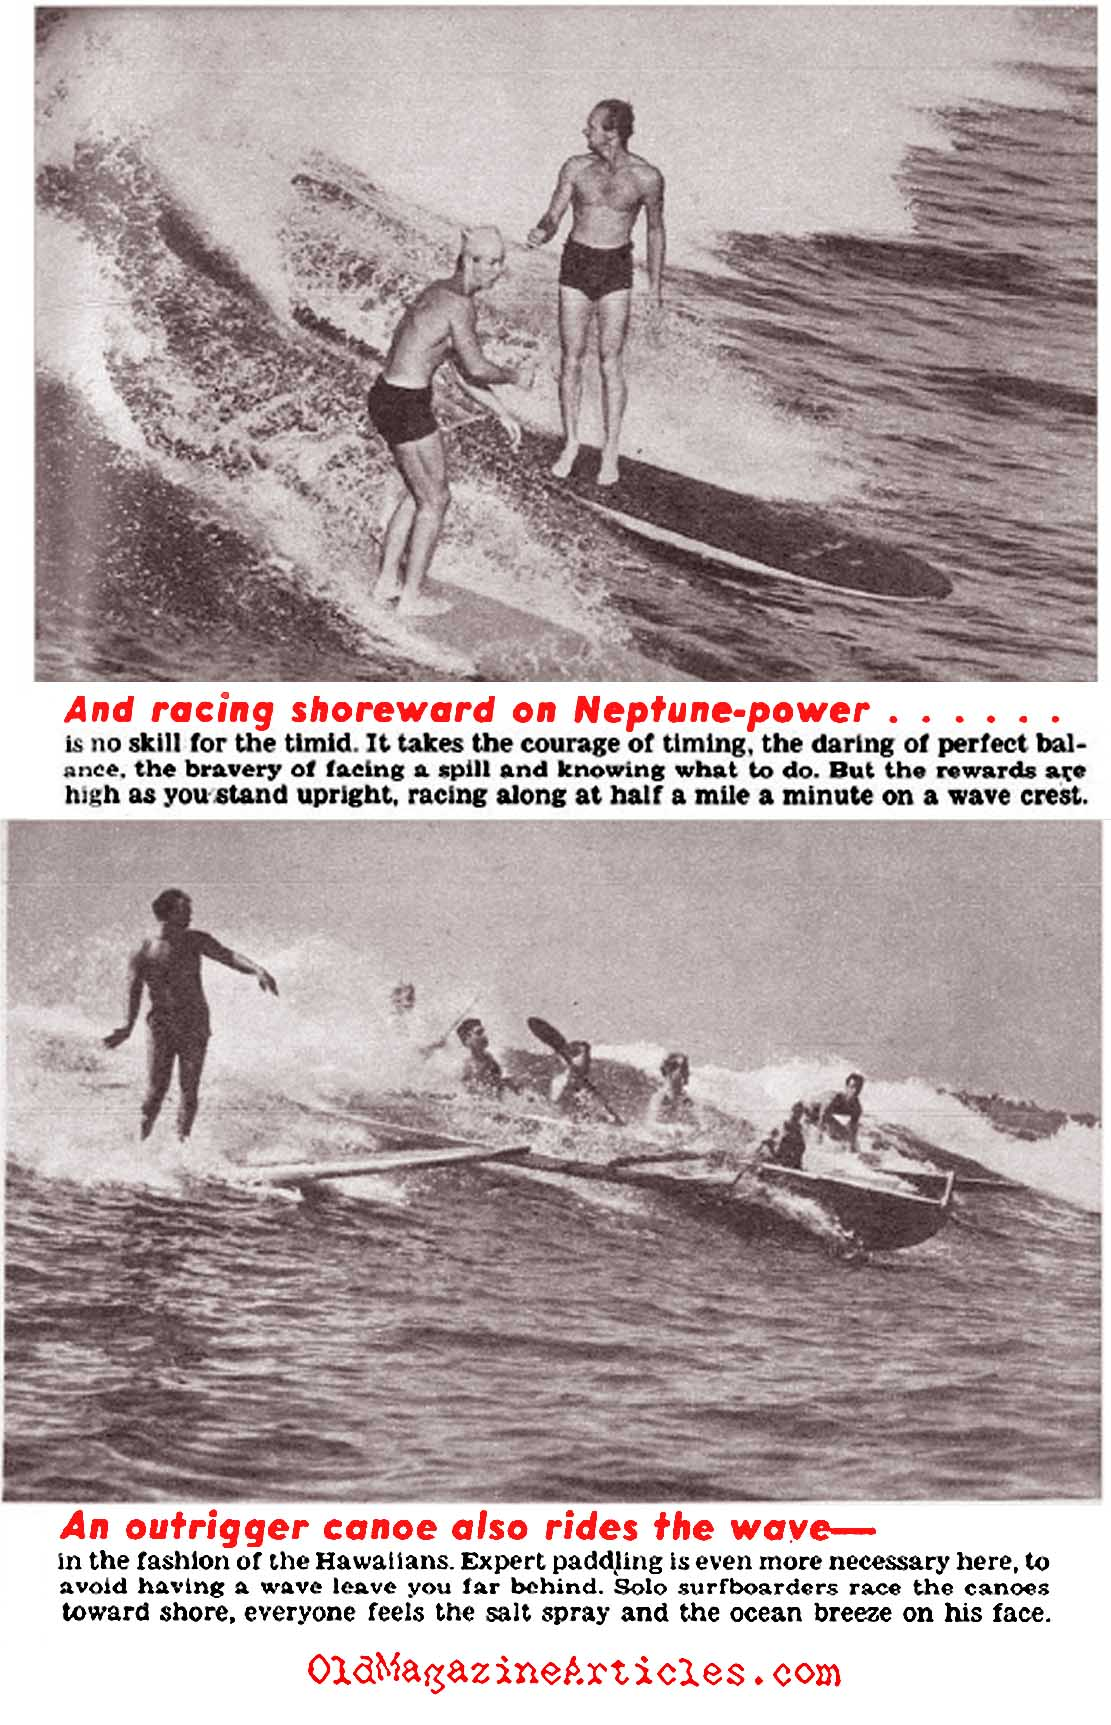 Surfing: The New Thing (Click Magazine, 1941)